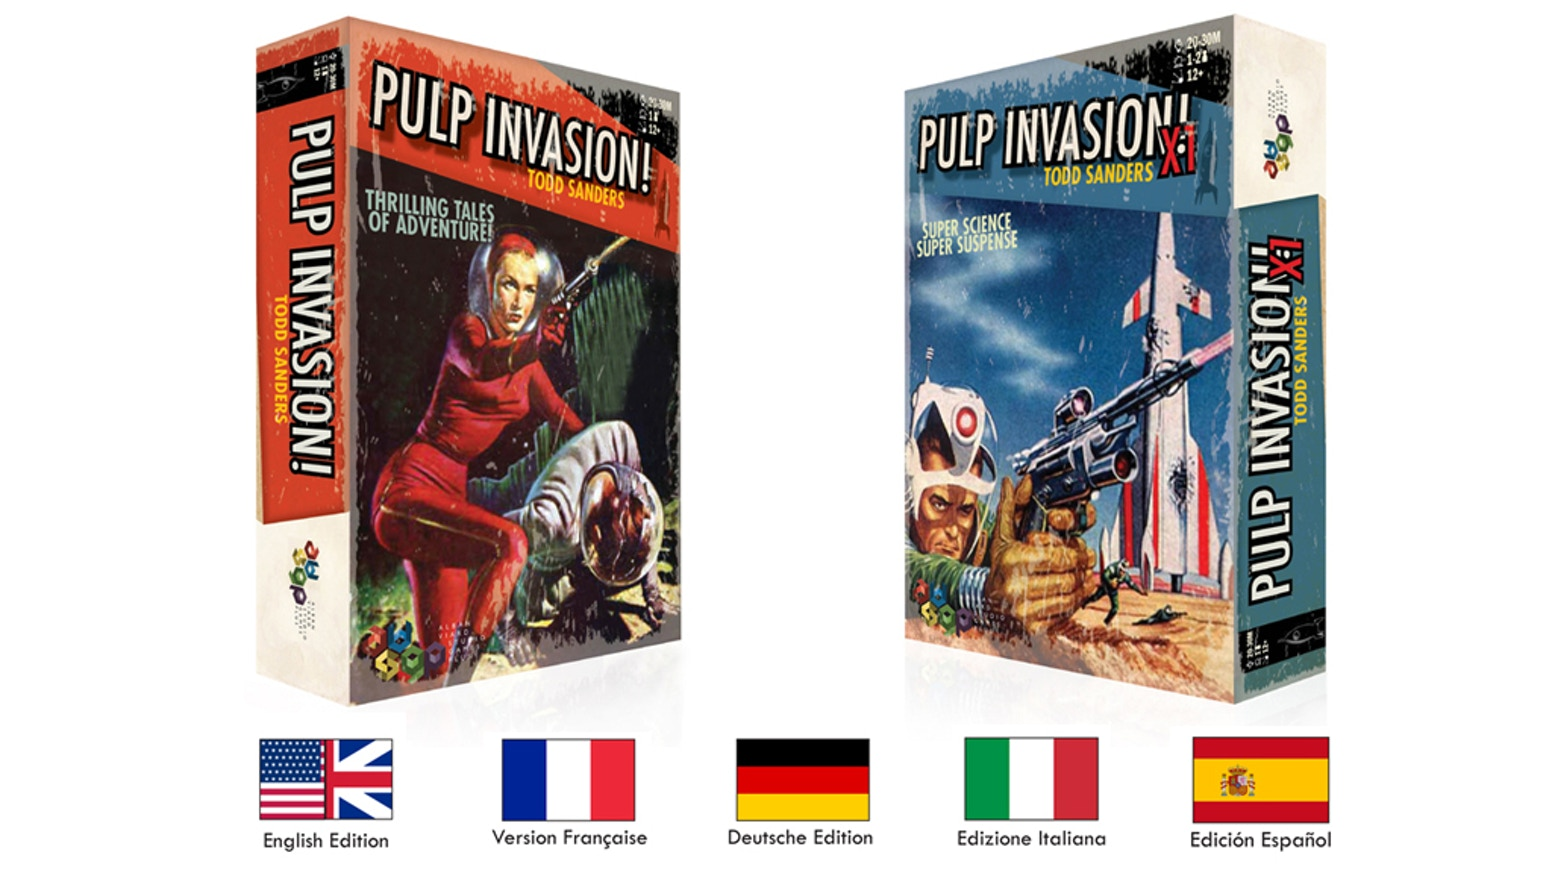 Adventures in outer space and beyond! Save the universe and find the Unknown Super-Weapons before the Alien invasion!